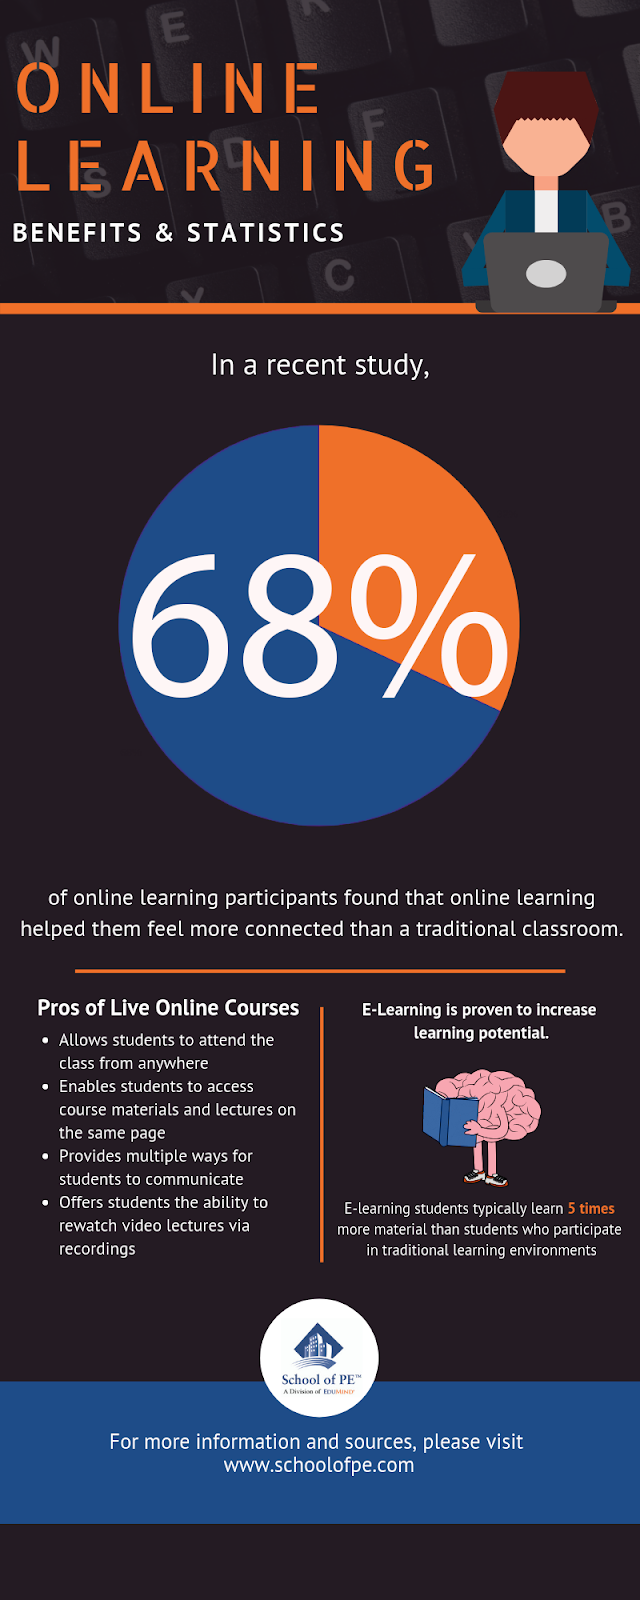 An infographic describing the benefits of online learning. Online learning has numerous benefits. School of PE provides online FE, PE, SE, and Surveying exam prep courses to help prepare students for NCEES exams.